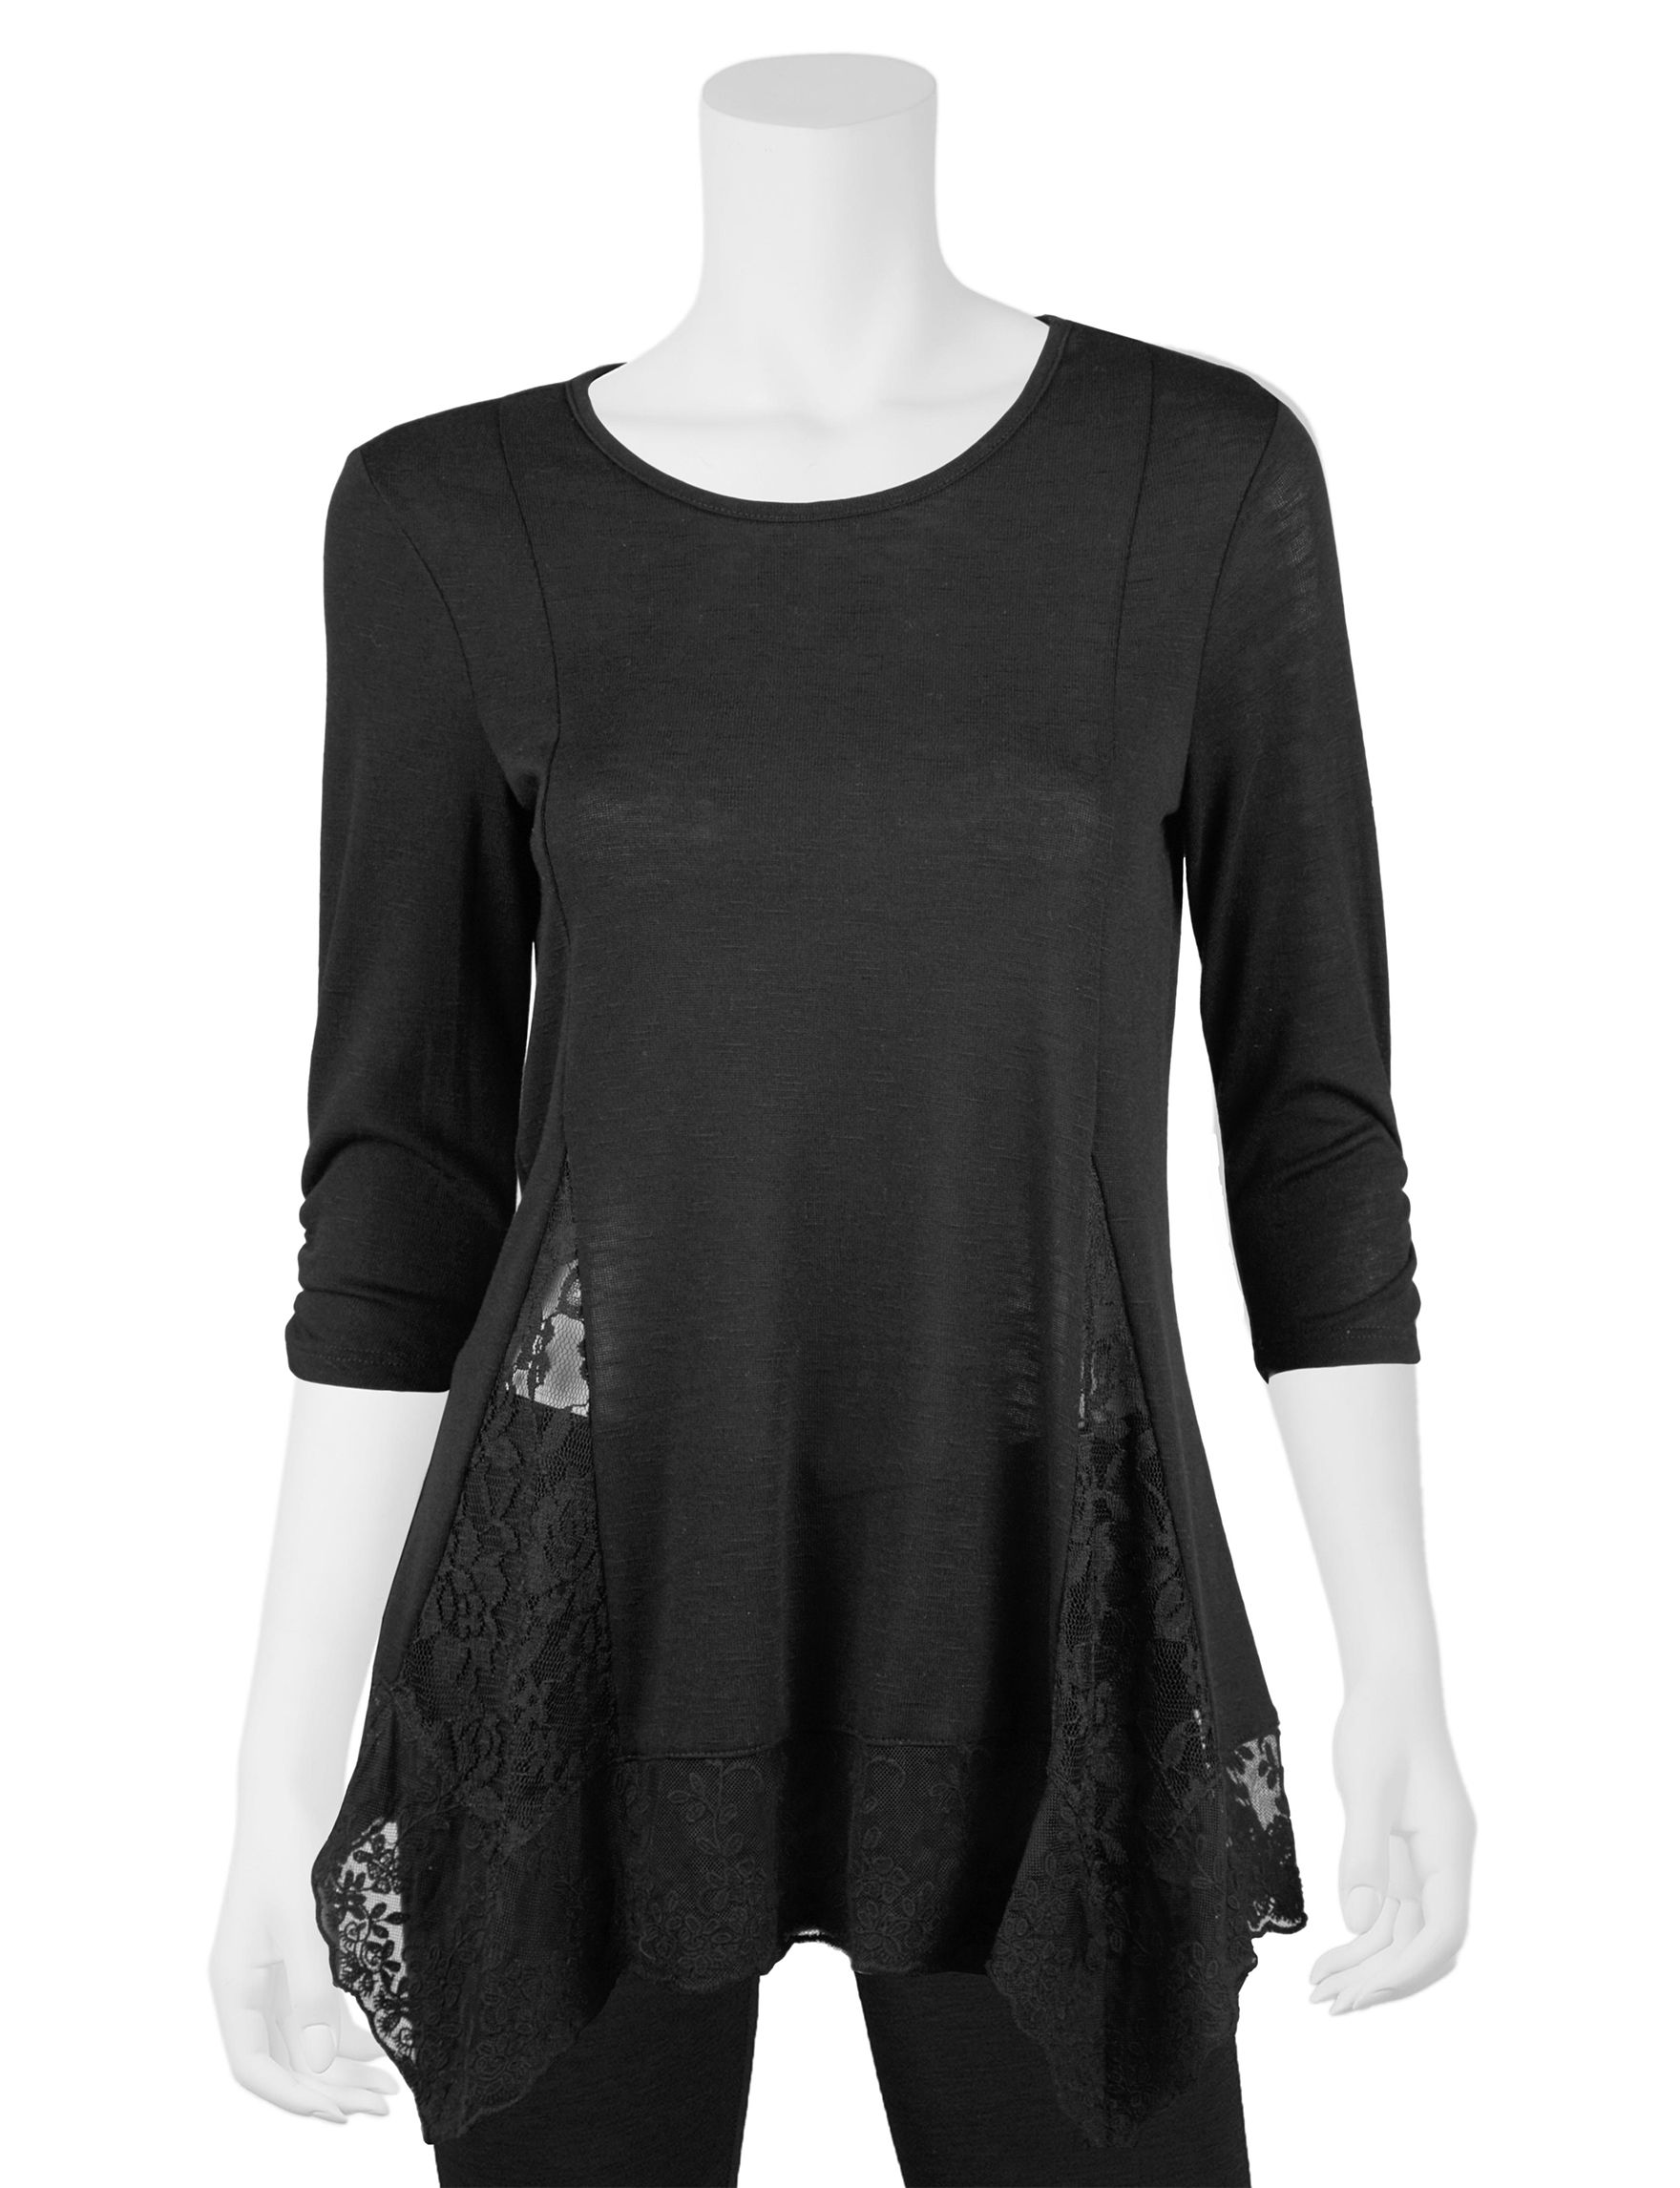 A. Byer Black Pull-overs Shirts & Blouses